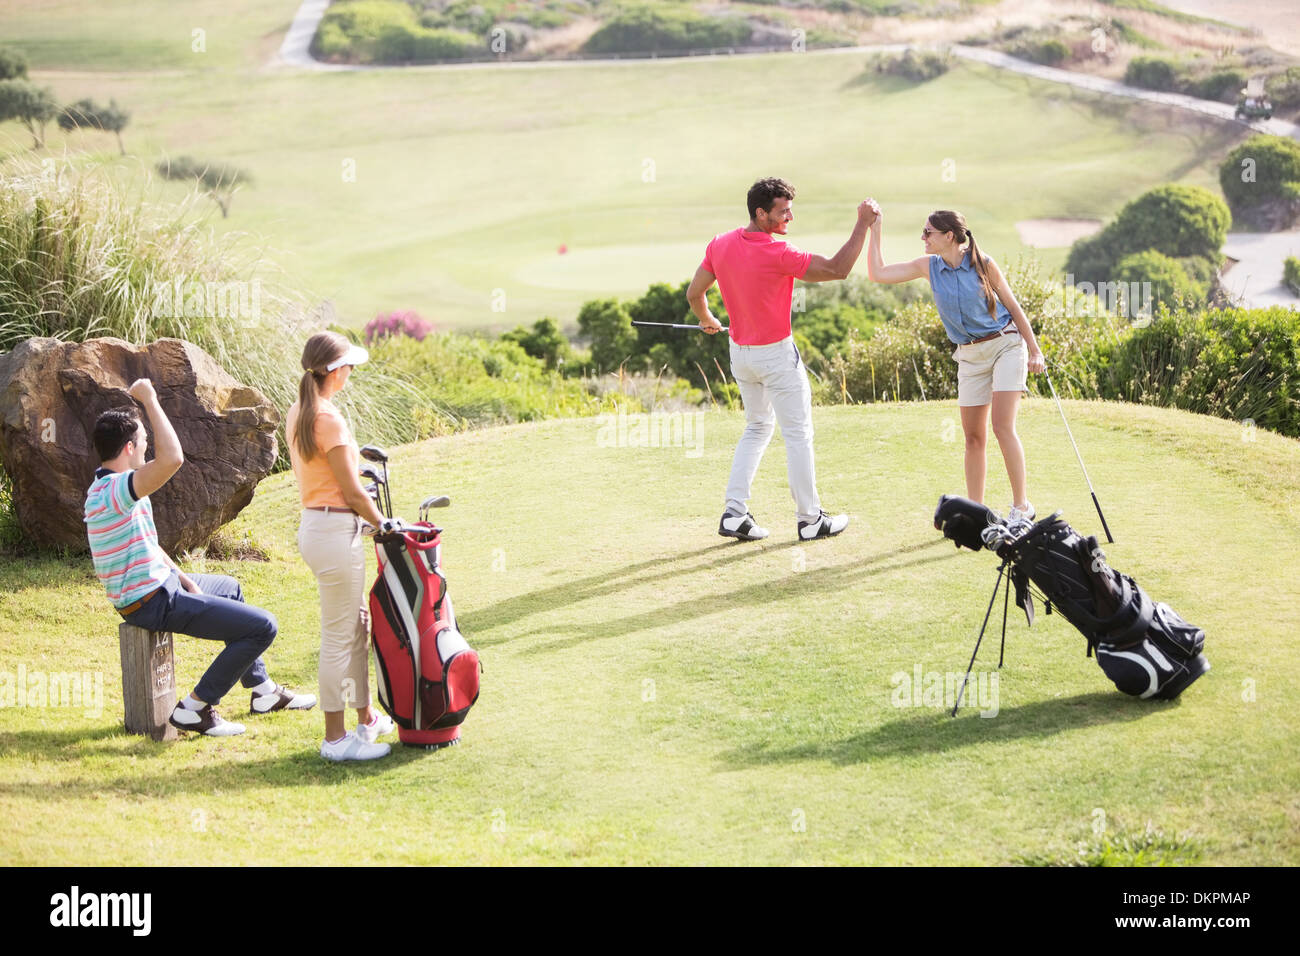 Friends playing golf on course - Stock Image